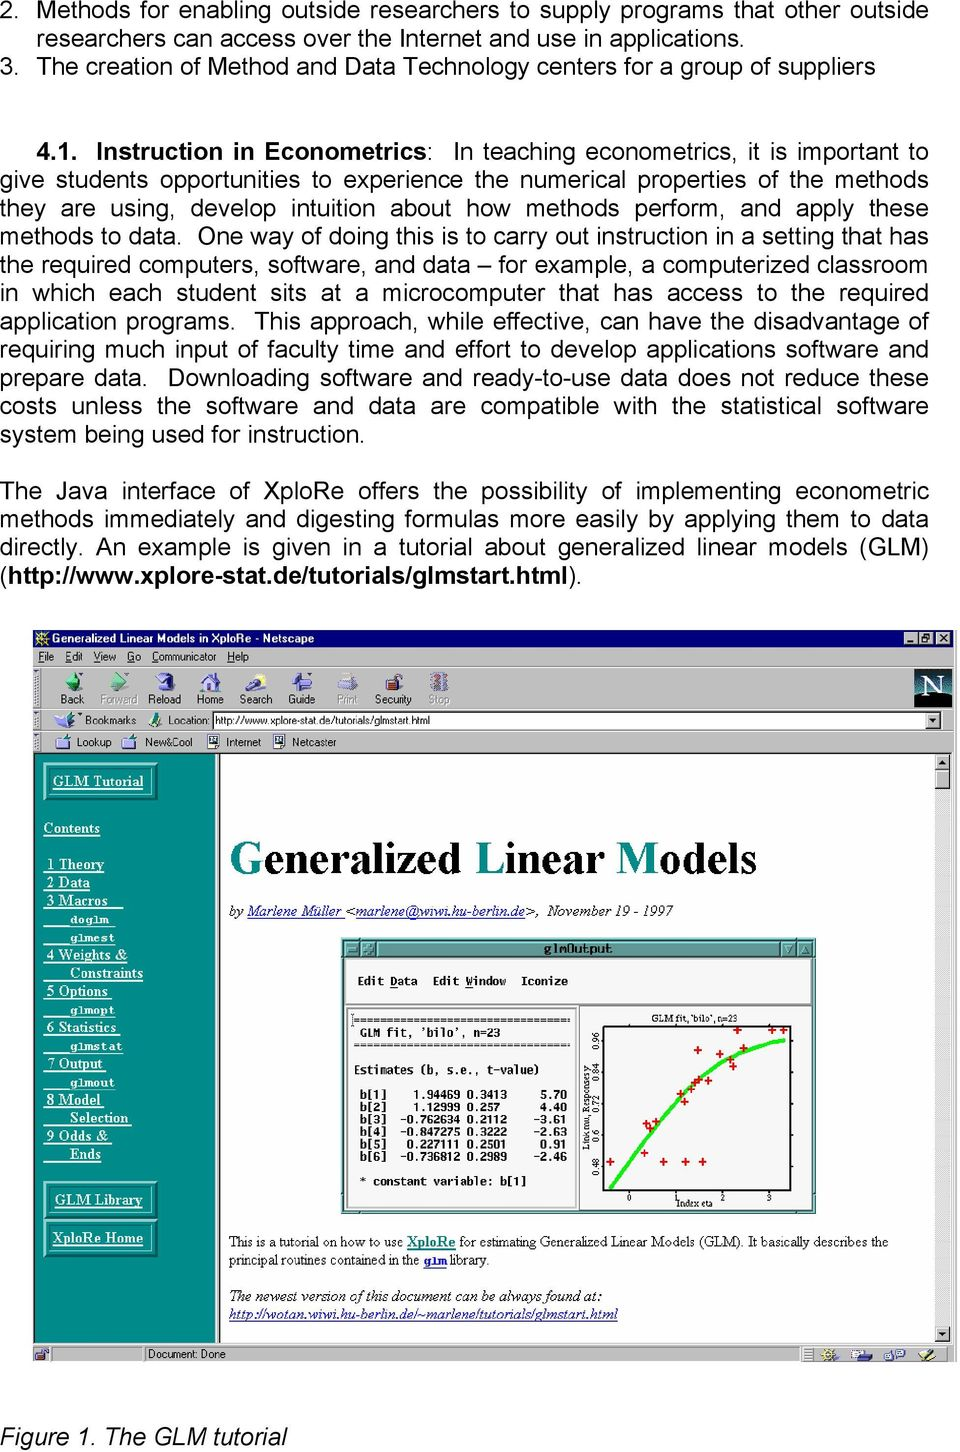 Instruction in Econometrics: In teaching econometrics, it is important to give students opportunities to experience the numerical properties of the methods they are using, develop intuition about how